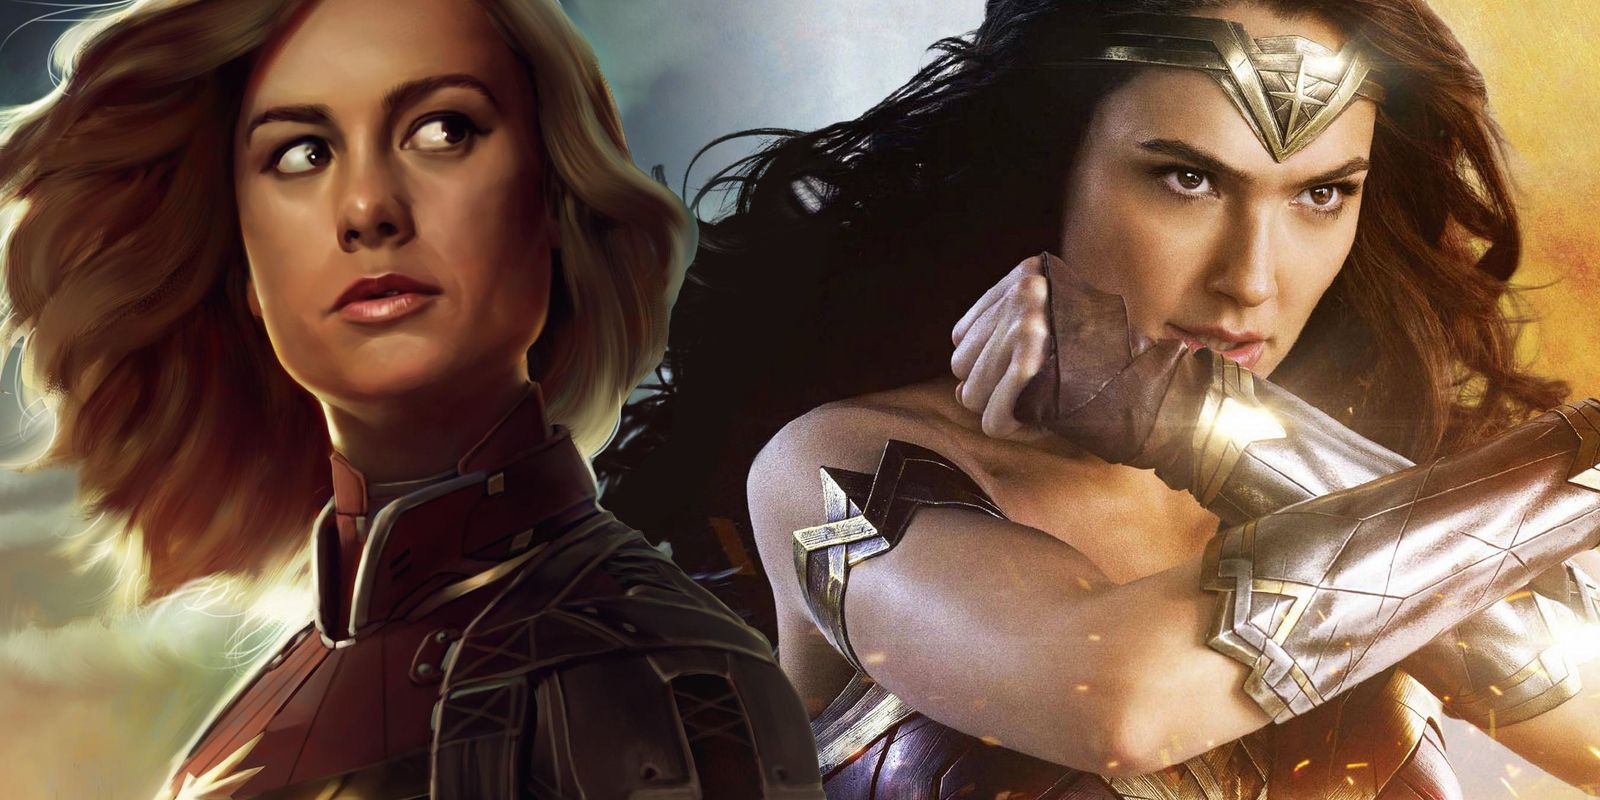 5 things captain marvel did better than wonder woman (& 5 it did worse)